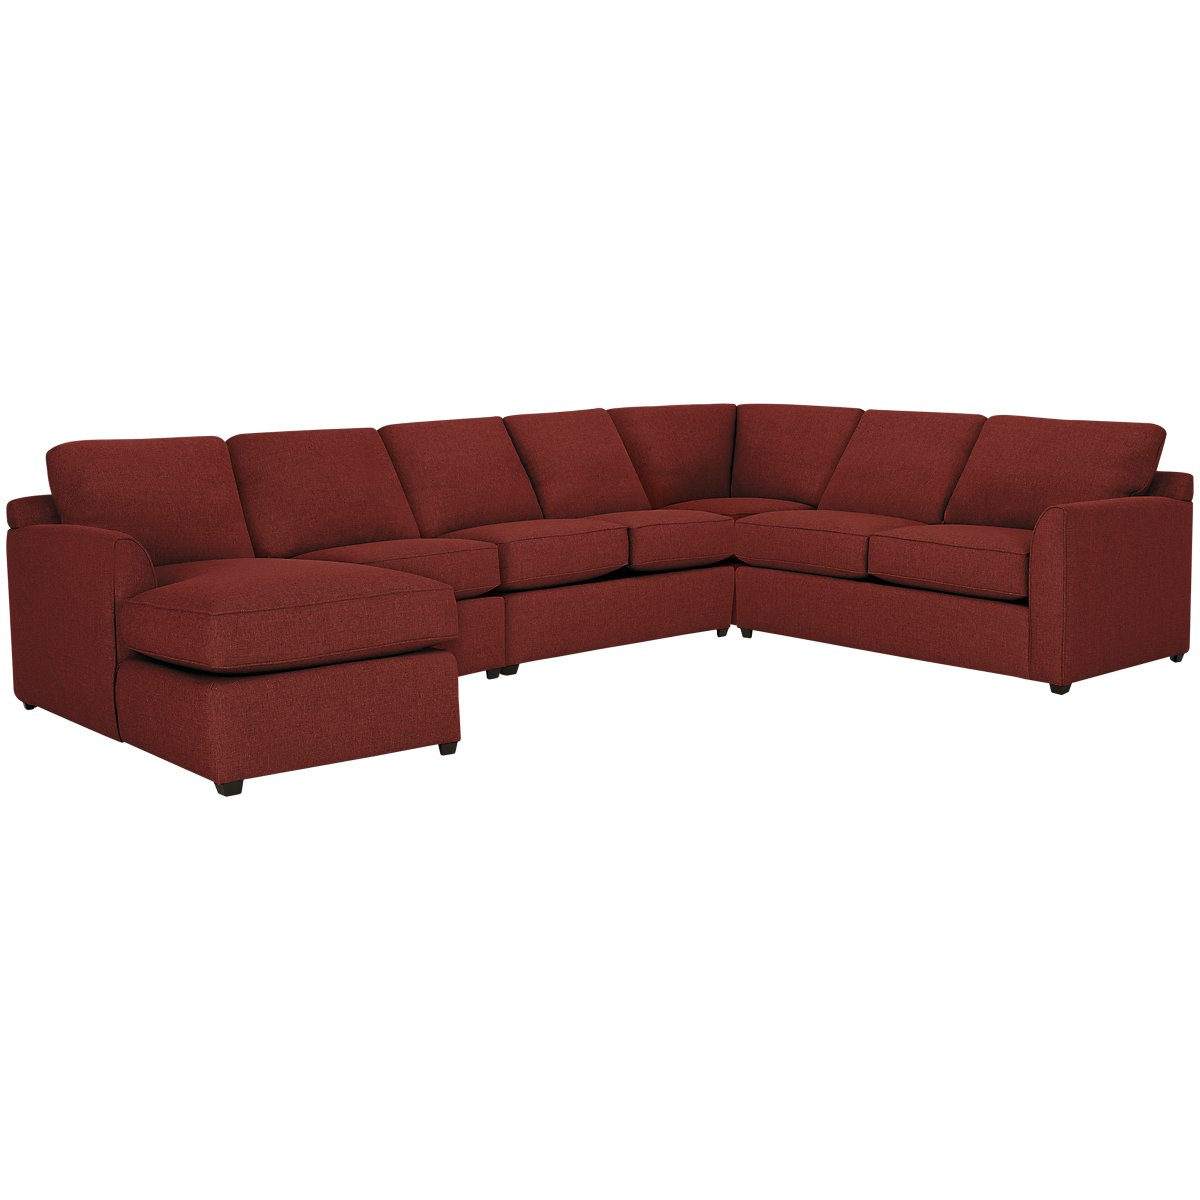 Asheville Red Fabric Large Left Chaise Sectional